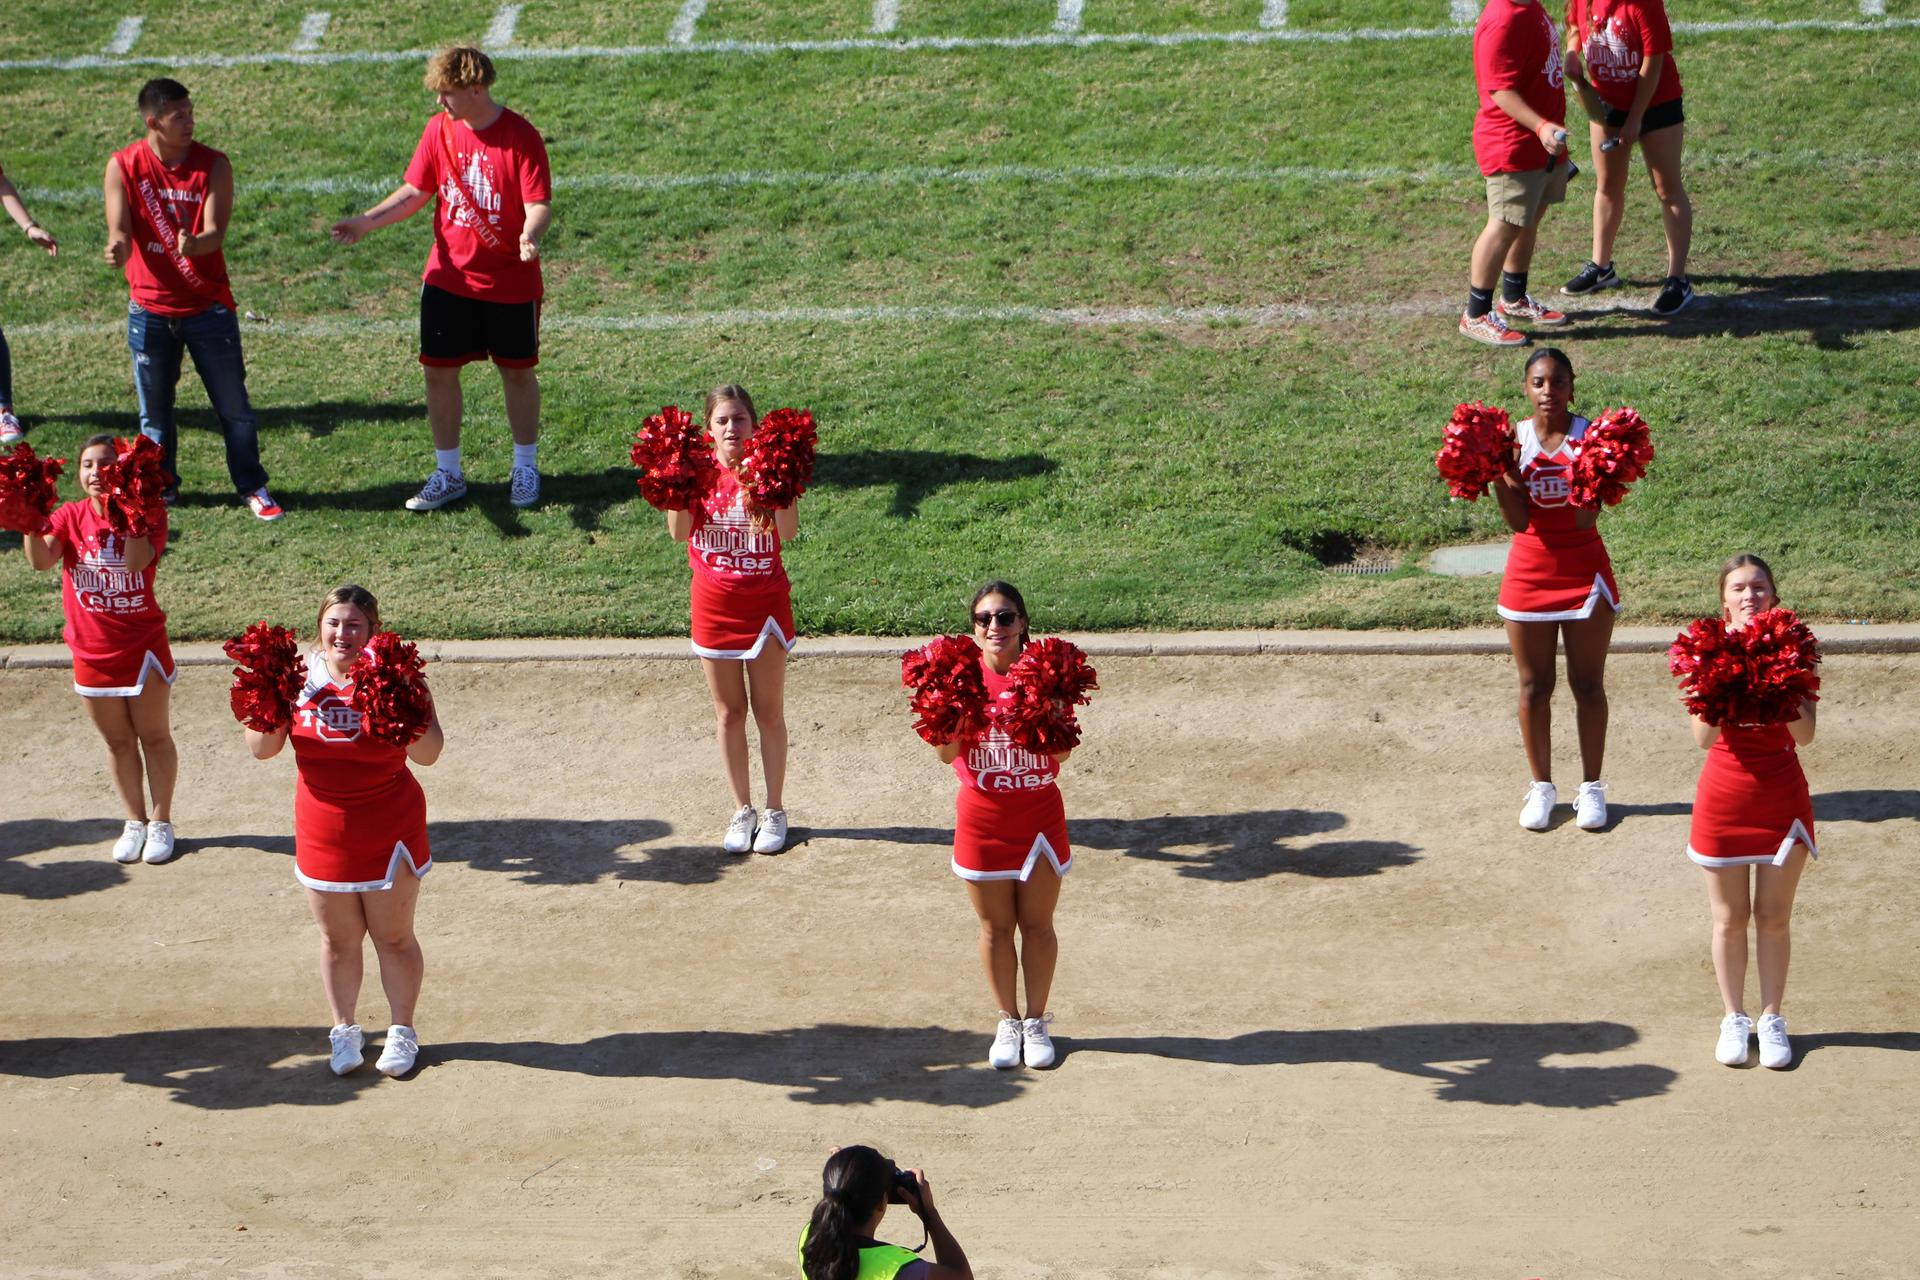 Cheer preforming at the rally